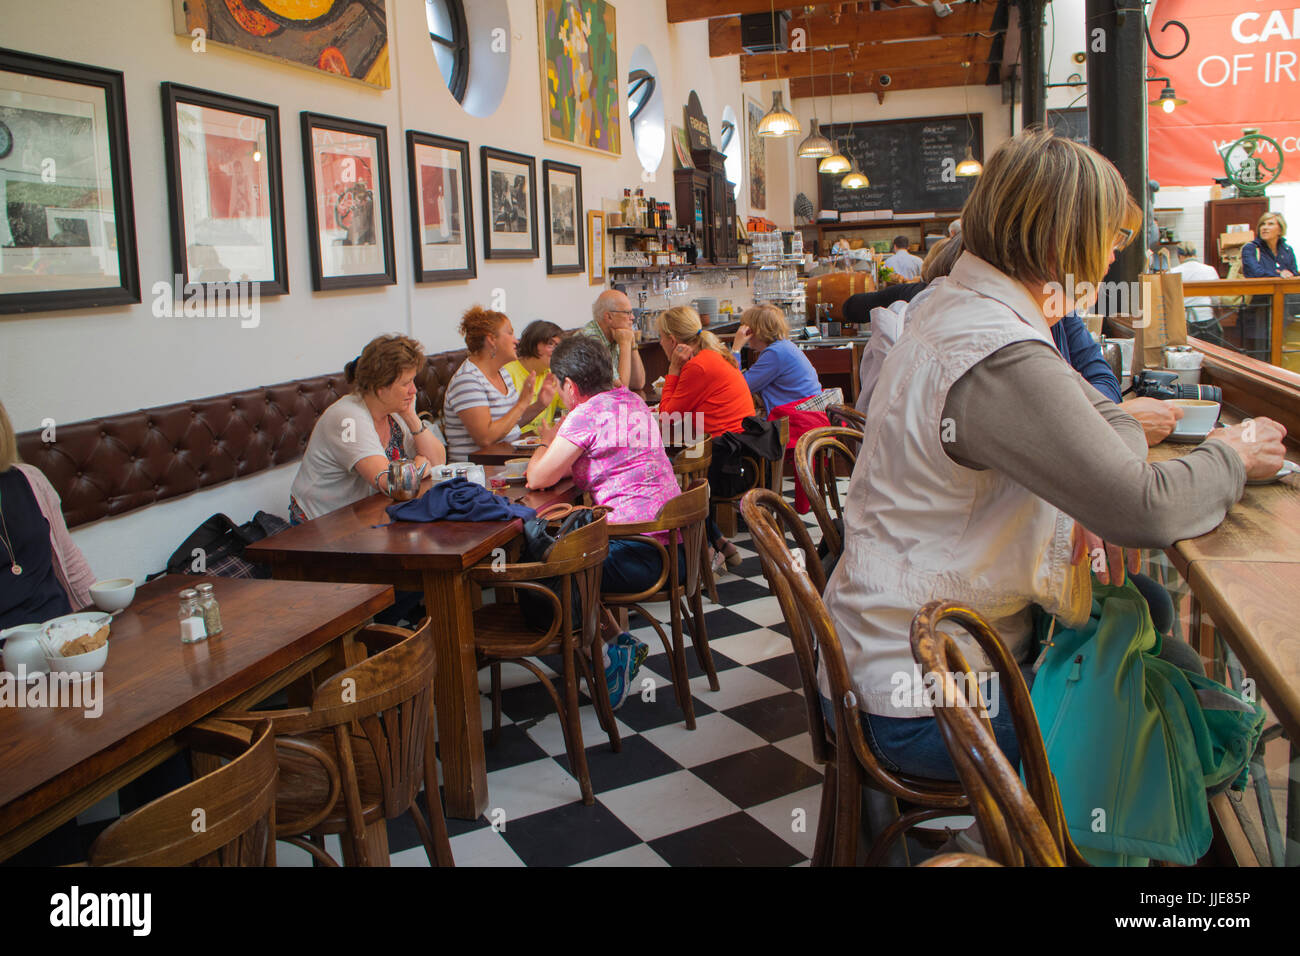 A cafe in the English Market, a popular visitor attraction in Cork, southern Ireland. - Stock Image